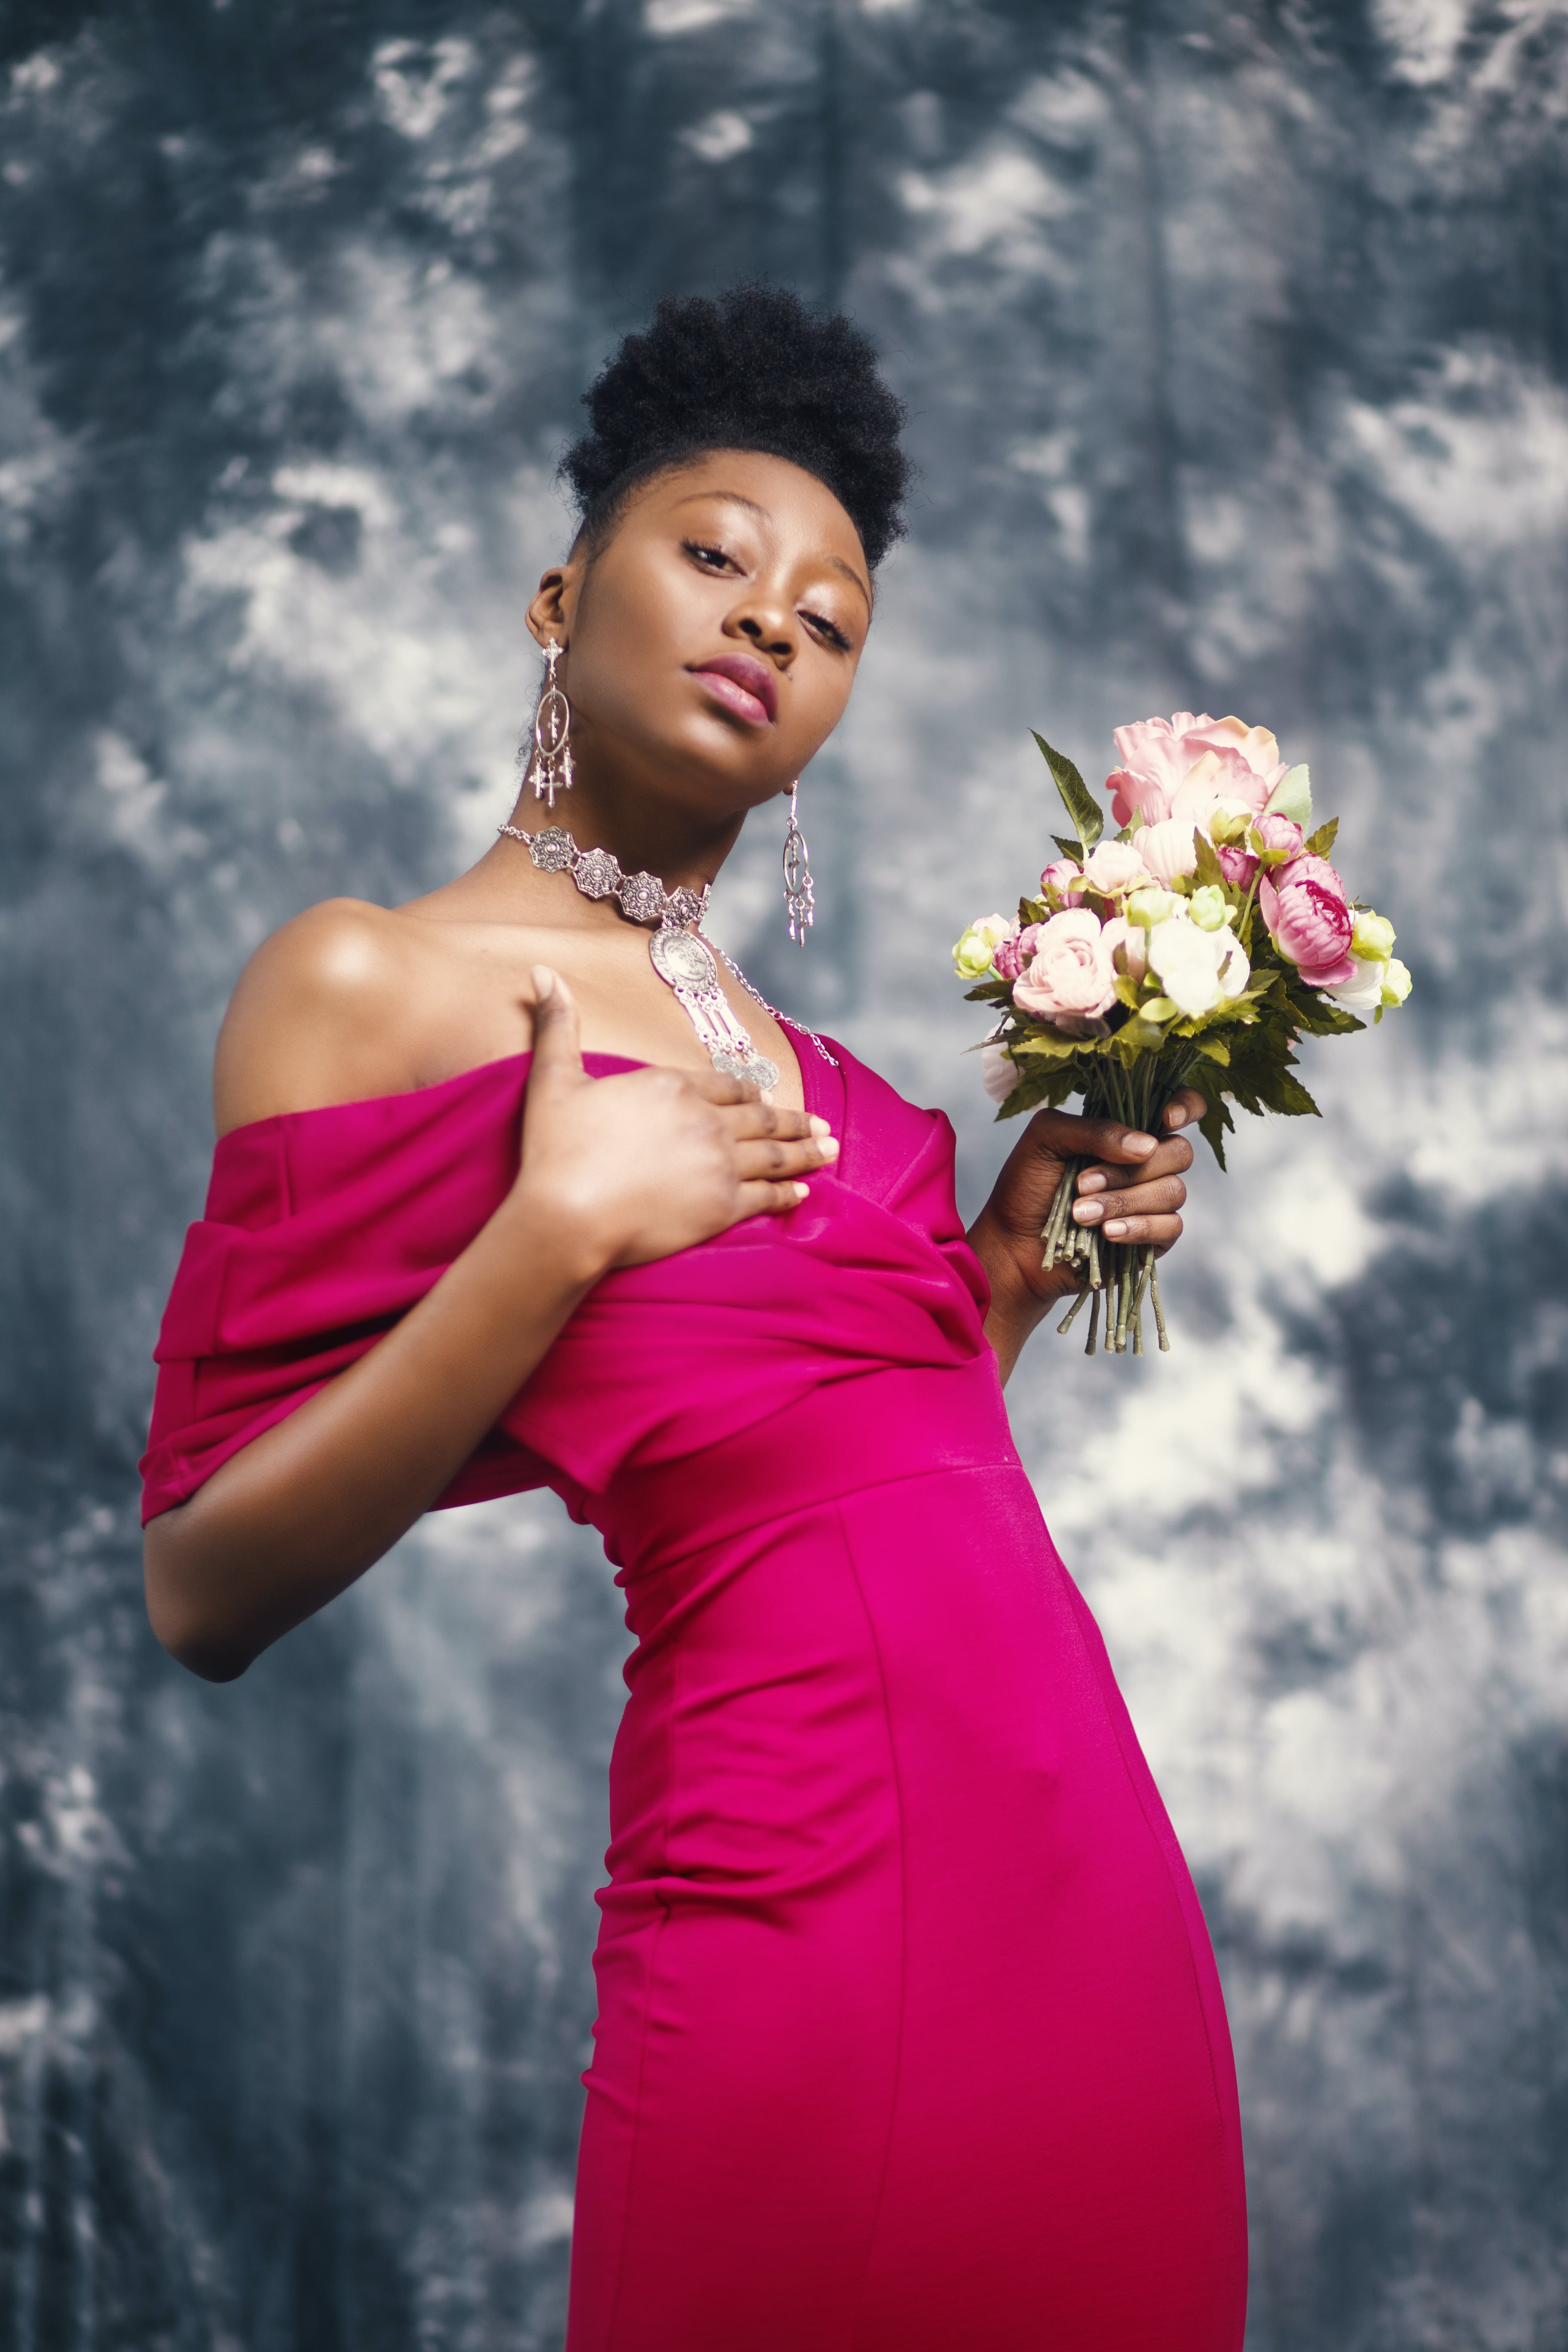 Woman in Pink Off-shoulder Dress Holding Pink and White Flower Bouquet